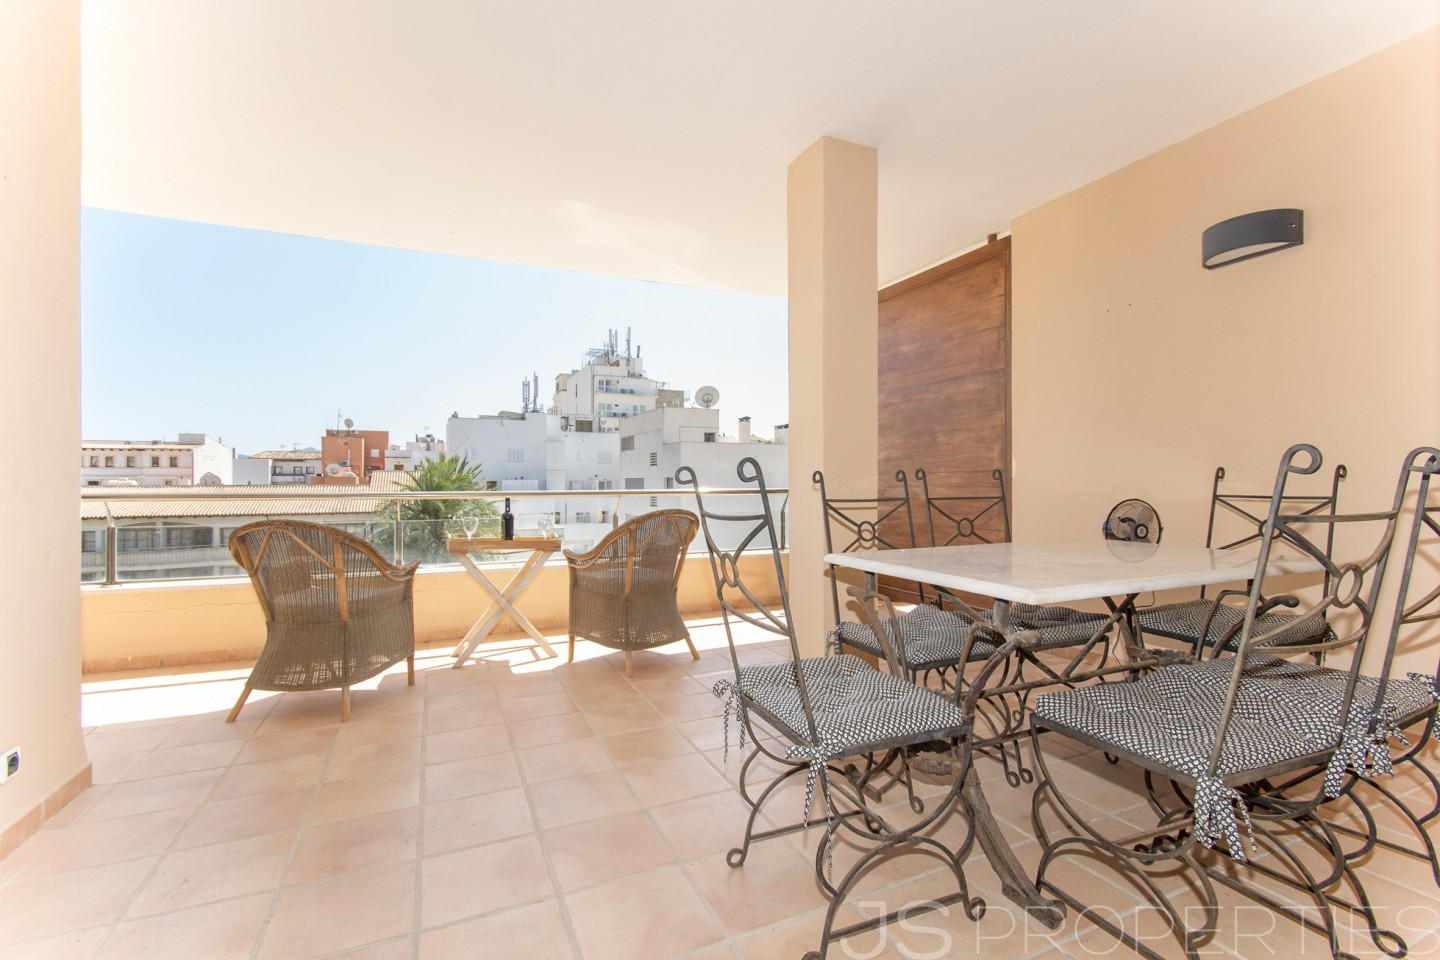 BEAUTIFUL APARTMENT IN THE HEART OF PUERTO POLLENSA